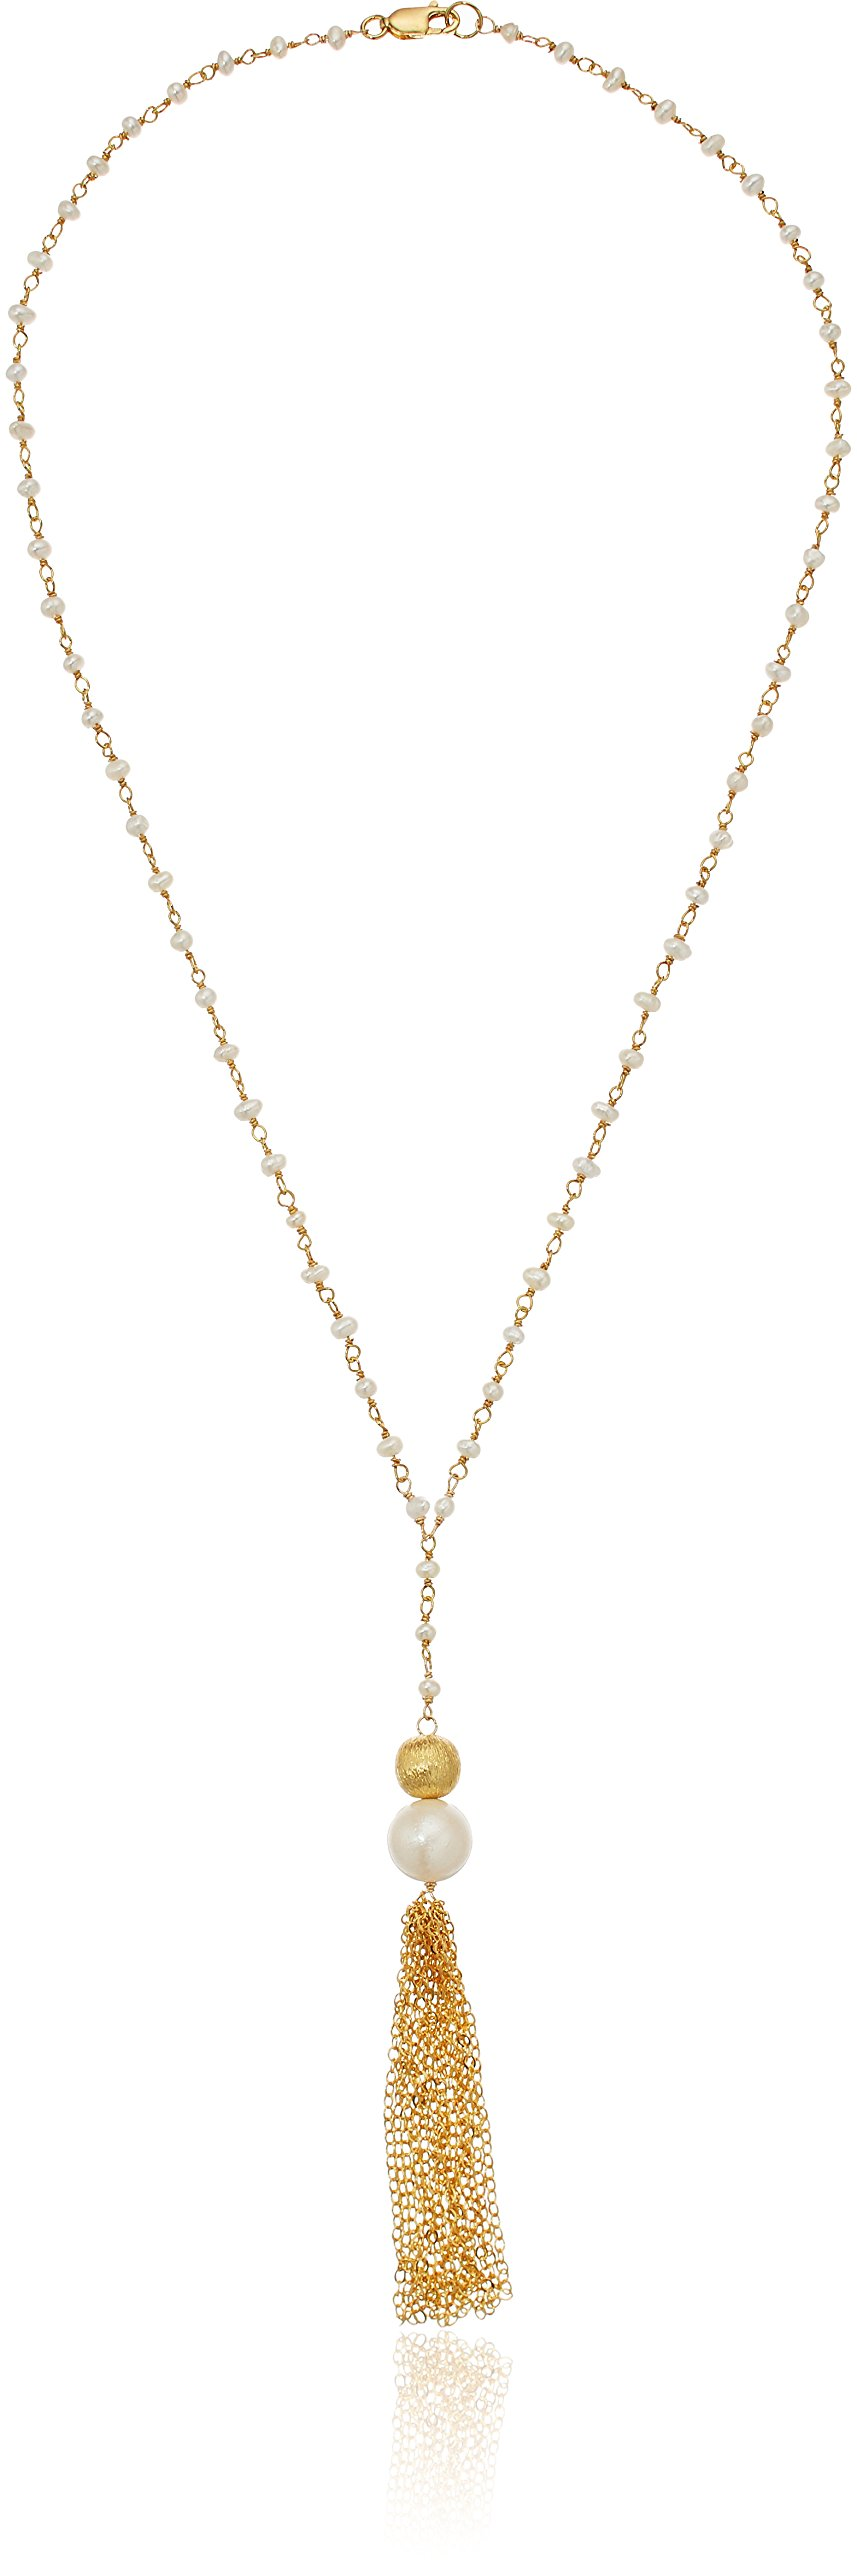 White Cultured Freshwater Pearl Linked ''Y'' Necklace with Textured Bead and Tassel Y-Shaped Necklace, 18''